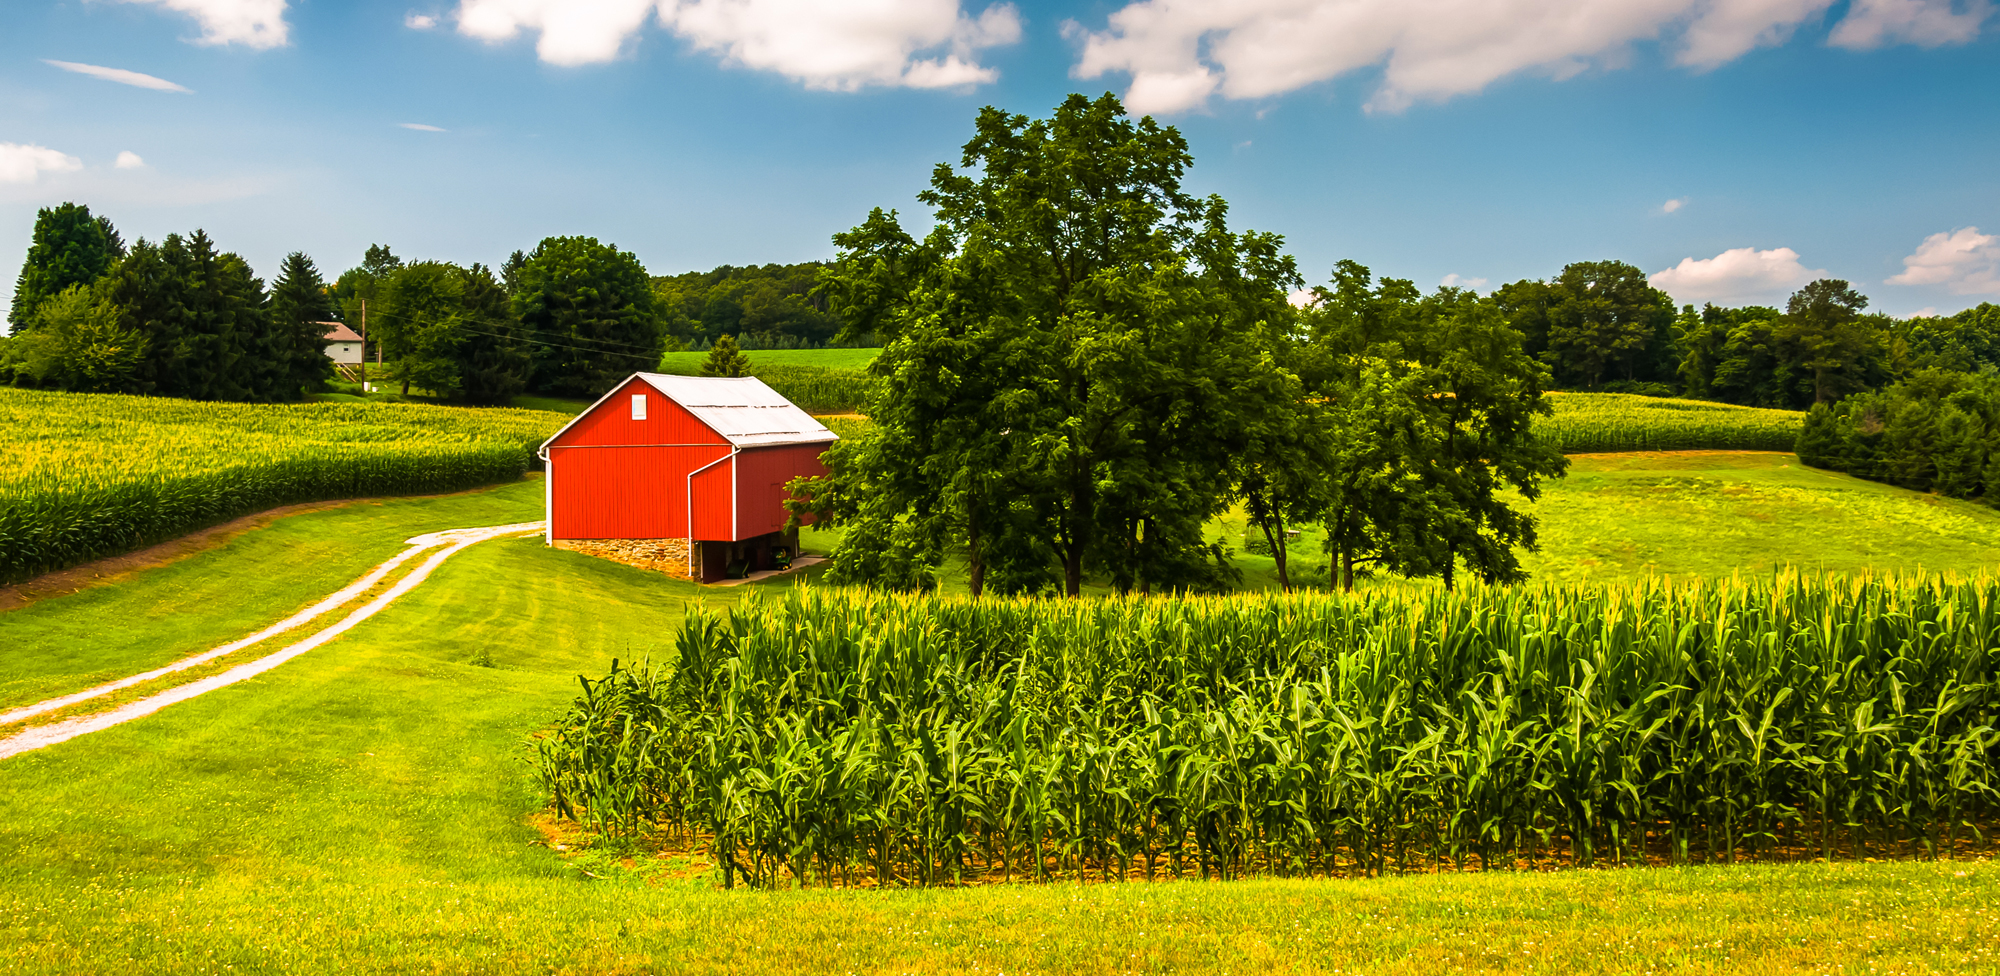 farm landscape with red barn and corn